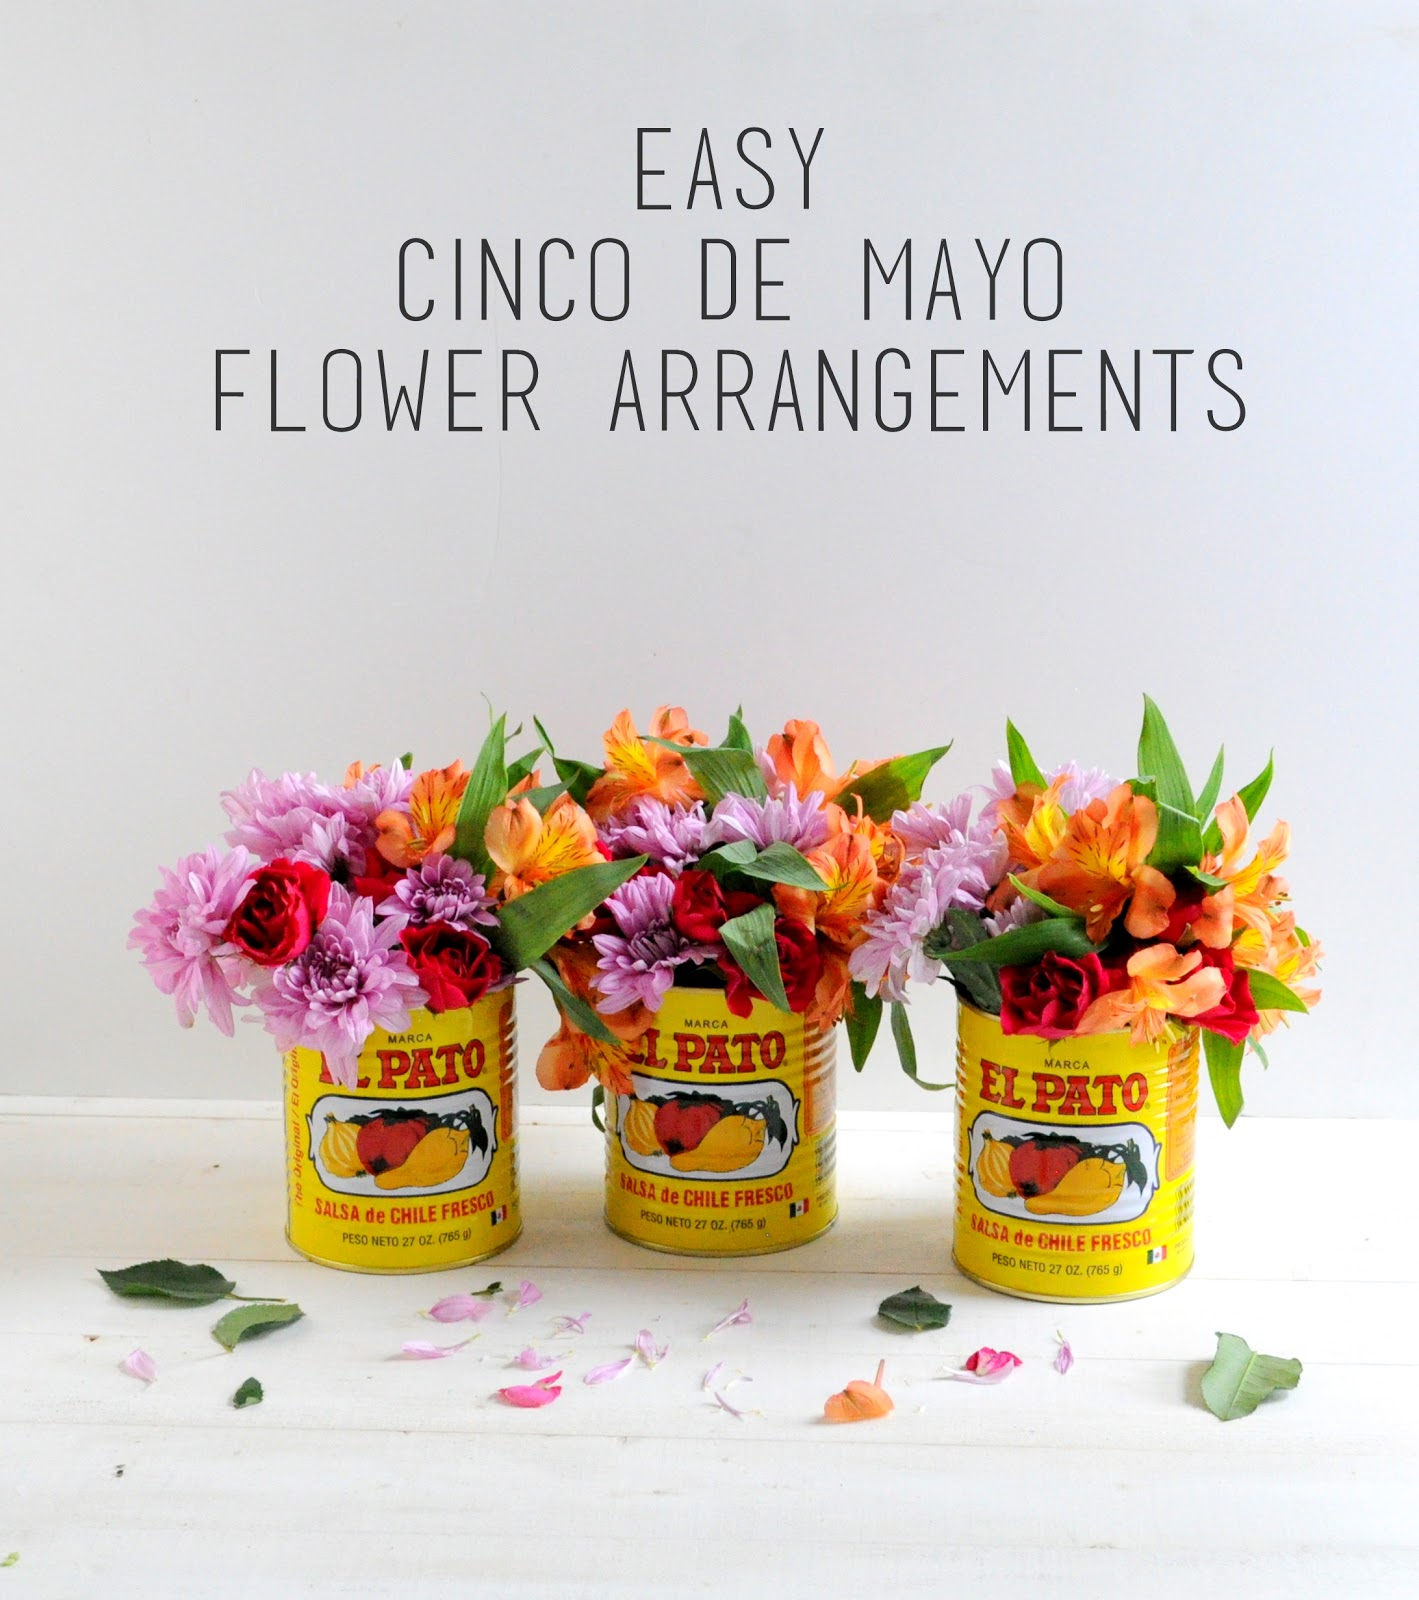 Easy Cinco De Mayo Flower Arrangements